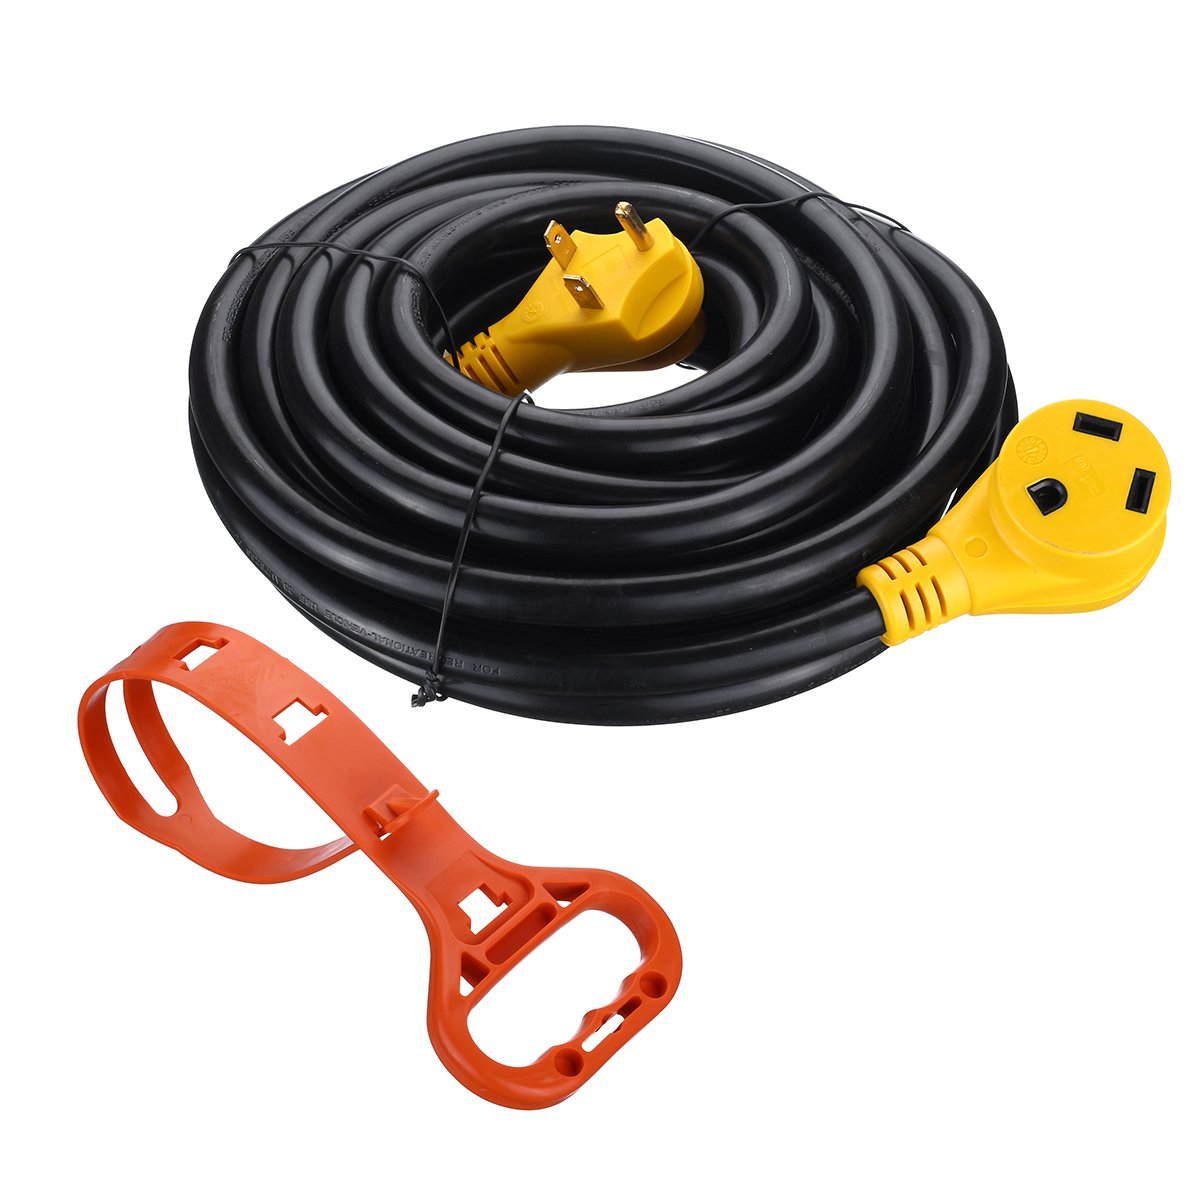 Miady 30ft 30Amp RV Extension Cord, Easy Unplug Design with Cord Organizer, 10 Gauge